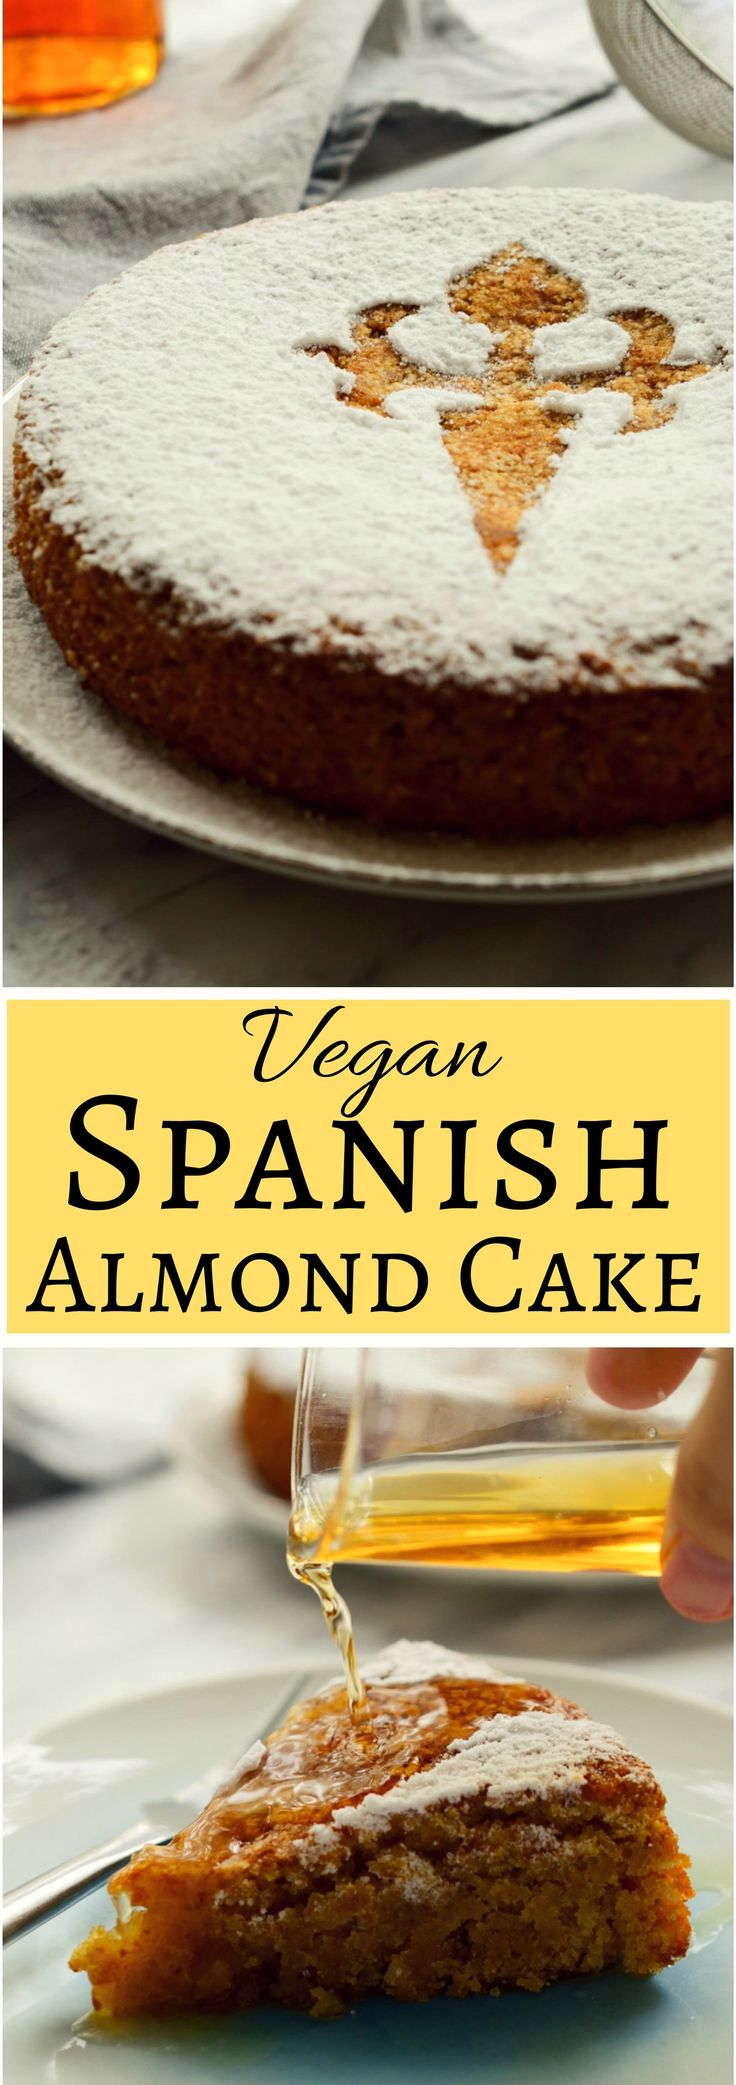 This Spanish almond cake is a vegan version of the traditional Tarta de Santiago from Galicia. This cake is easy to make with minimal ingredients and #aquafaba . Decorated with the Cross of Saint James and served with Spanish moscatel (or other sweet liqueur), this #vegan #spanish almond cake makes a great #dessert to a holiday or a regular weeknight dinner!